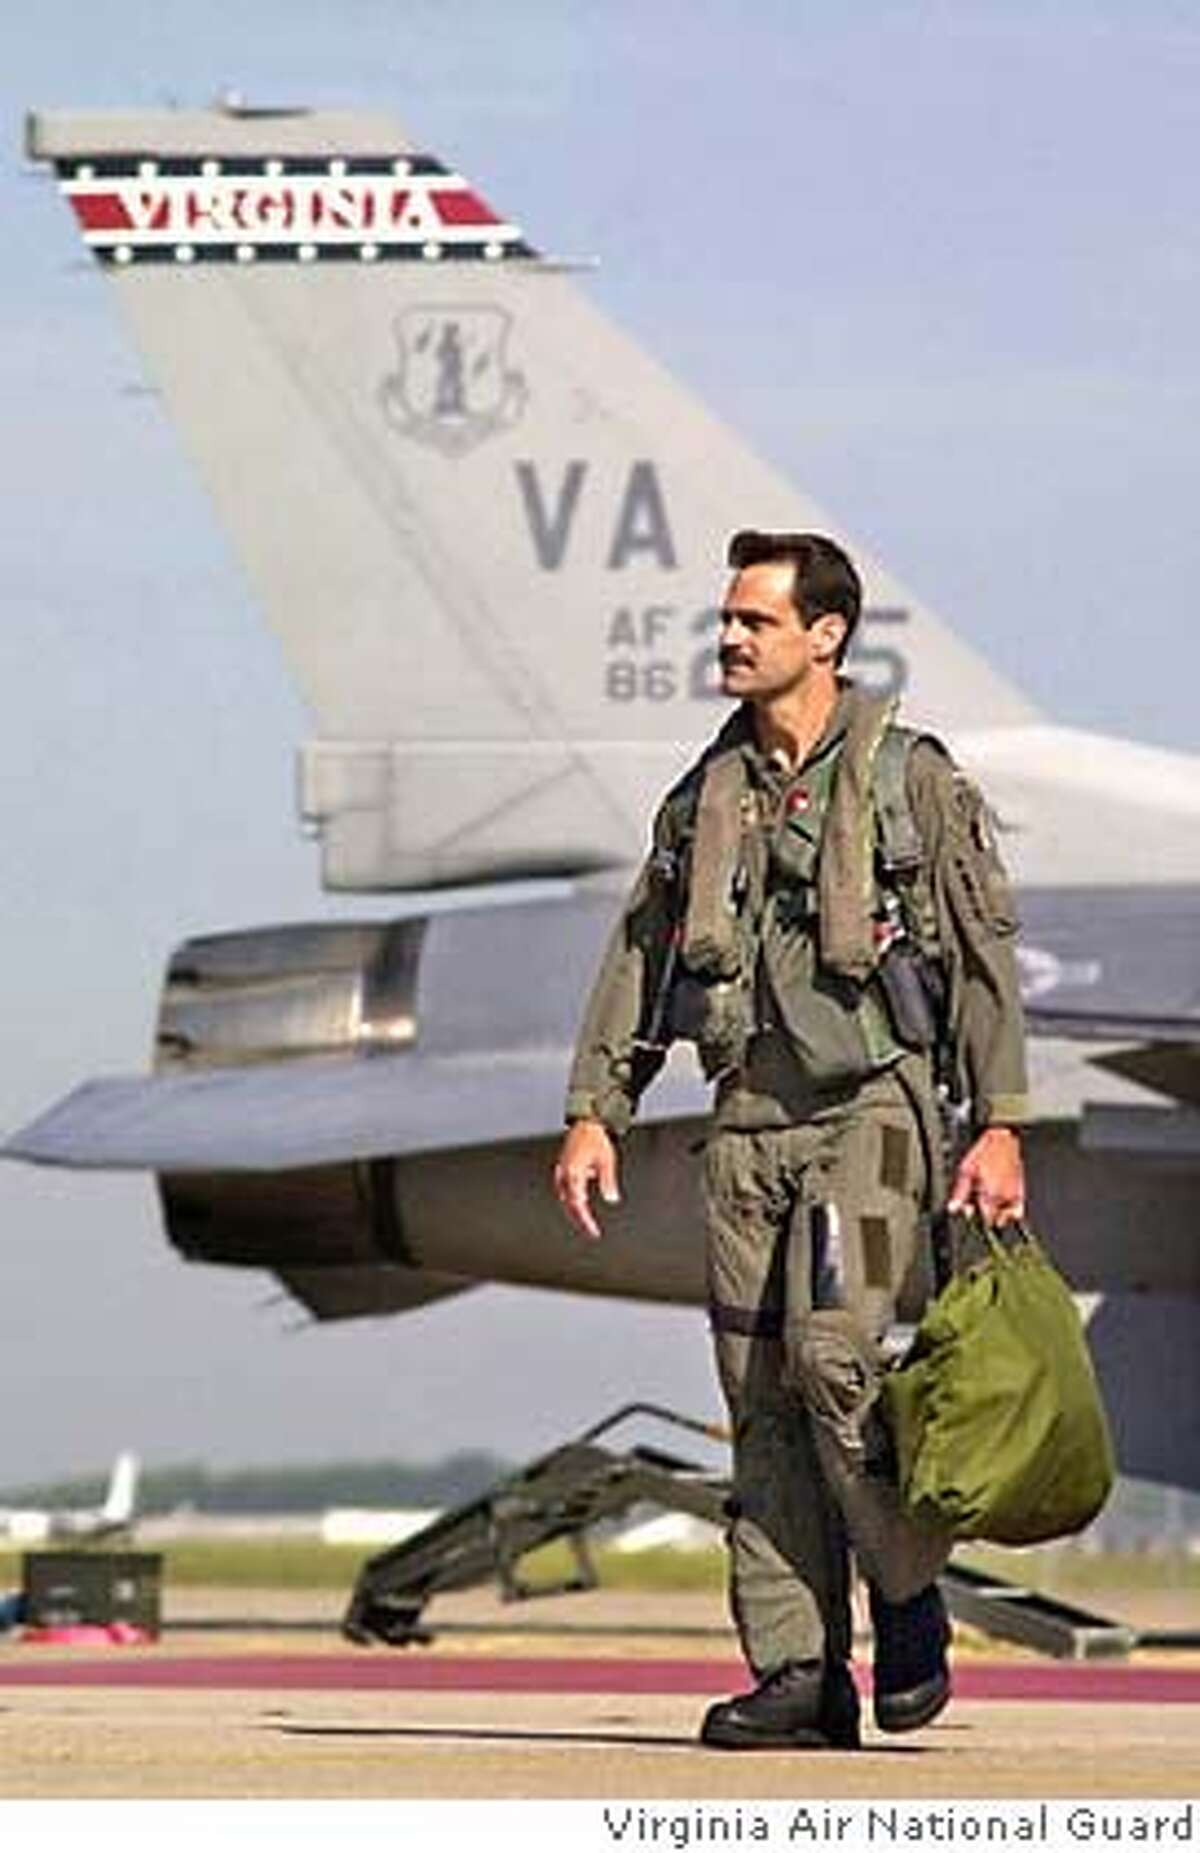 �Brigadier General Peter Bonanni used to fly F-16�s over enemy skies. After he stopped flying, he worked with video game developers to make flight simulators for the Air Force. Credit: Virginia Air National Guard